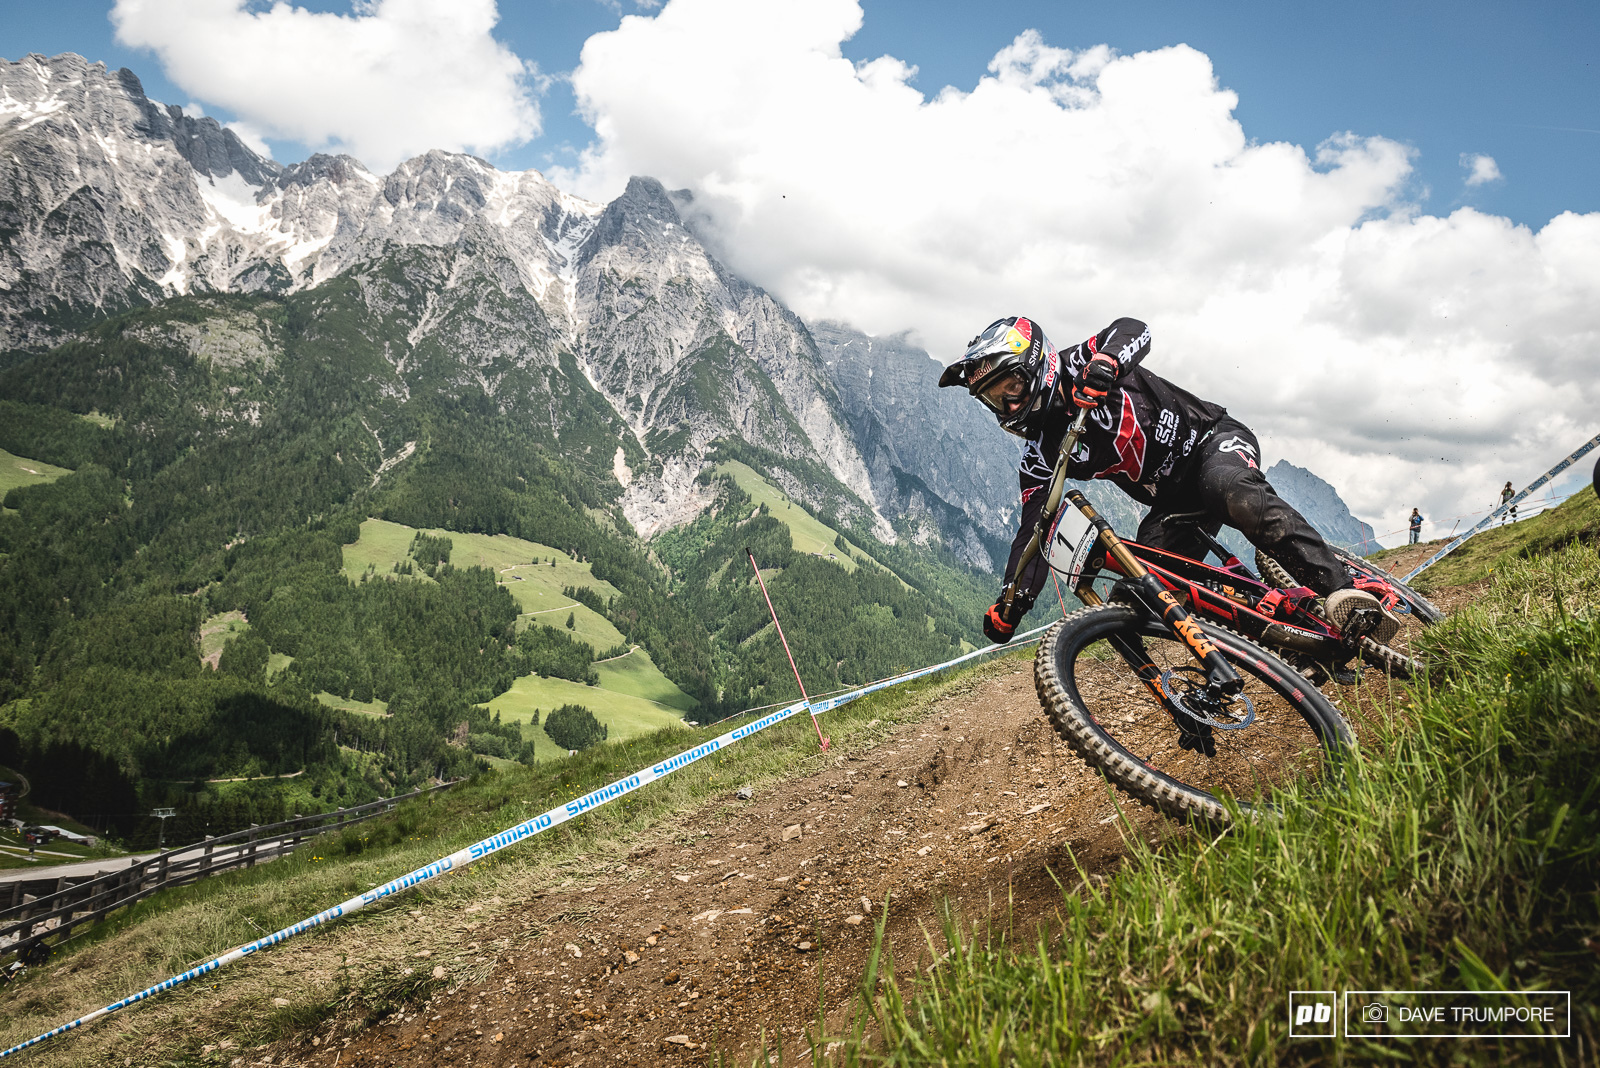 What new challenge will Leogang serve up for Aaron Gwin this year you ask Well it look like its going to be a heavy dose of rain and mud which has never been his forte but he has overcome worse here so you really never know.